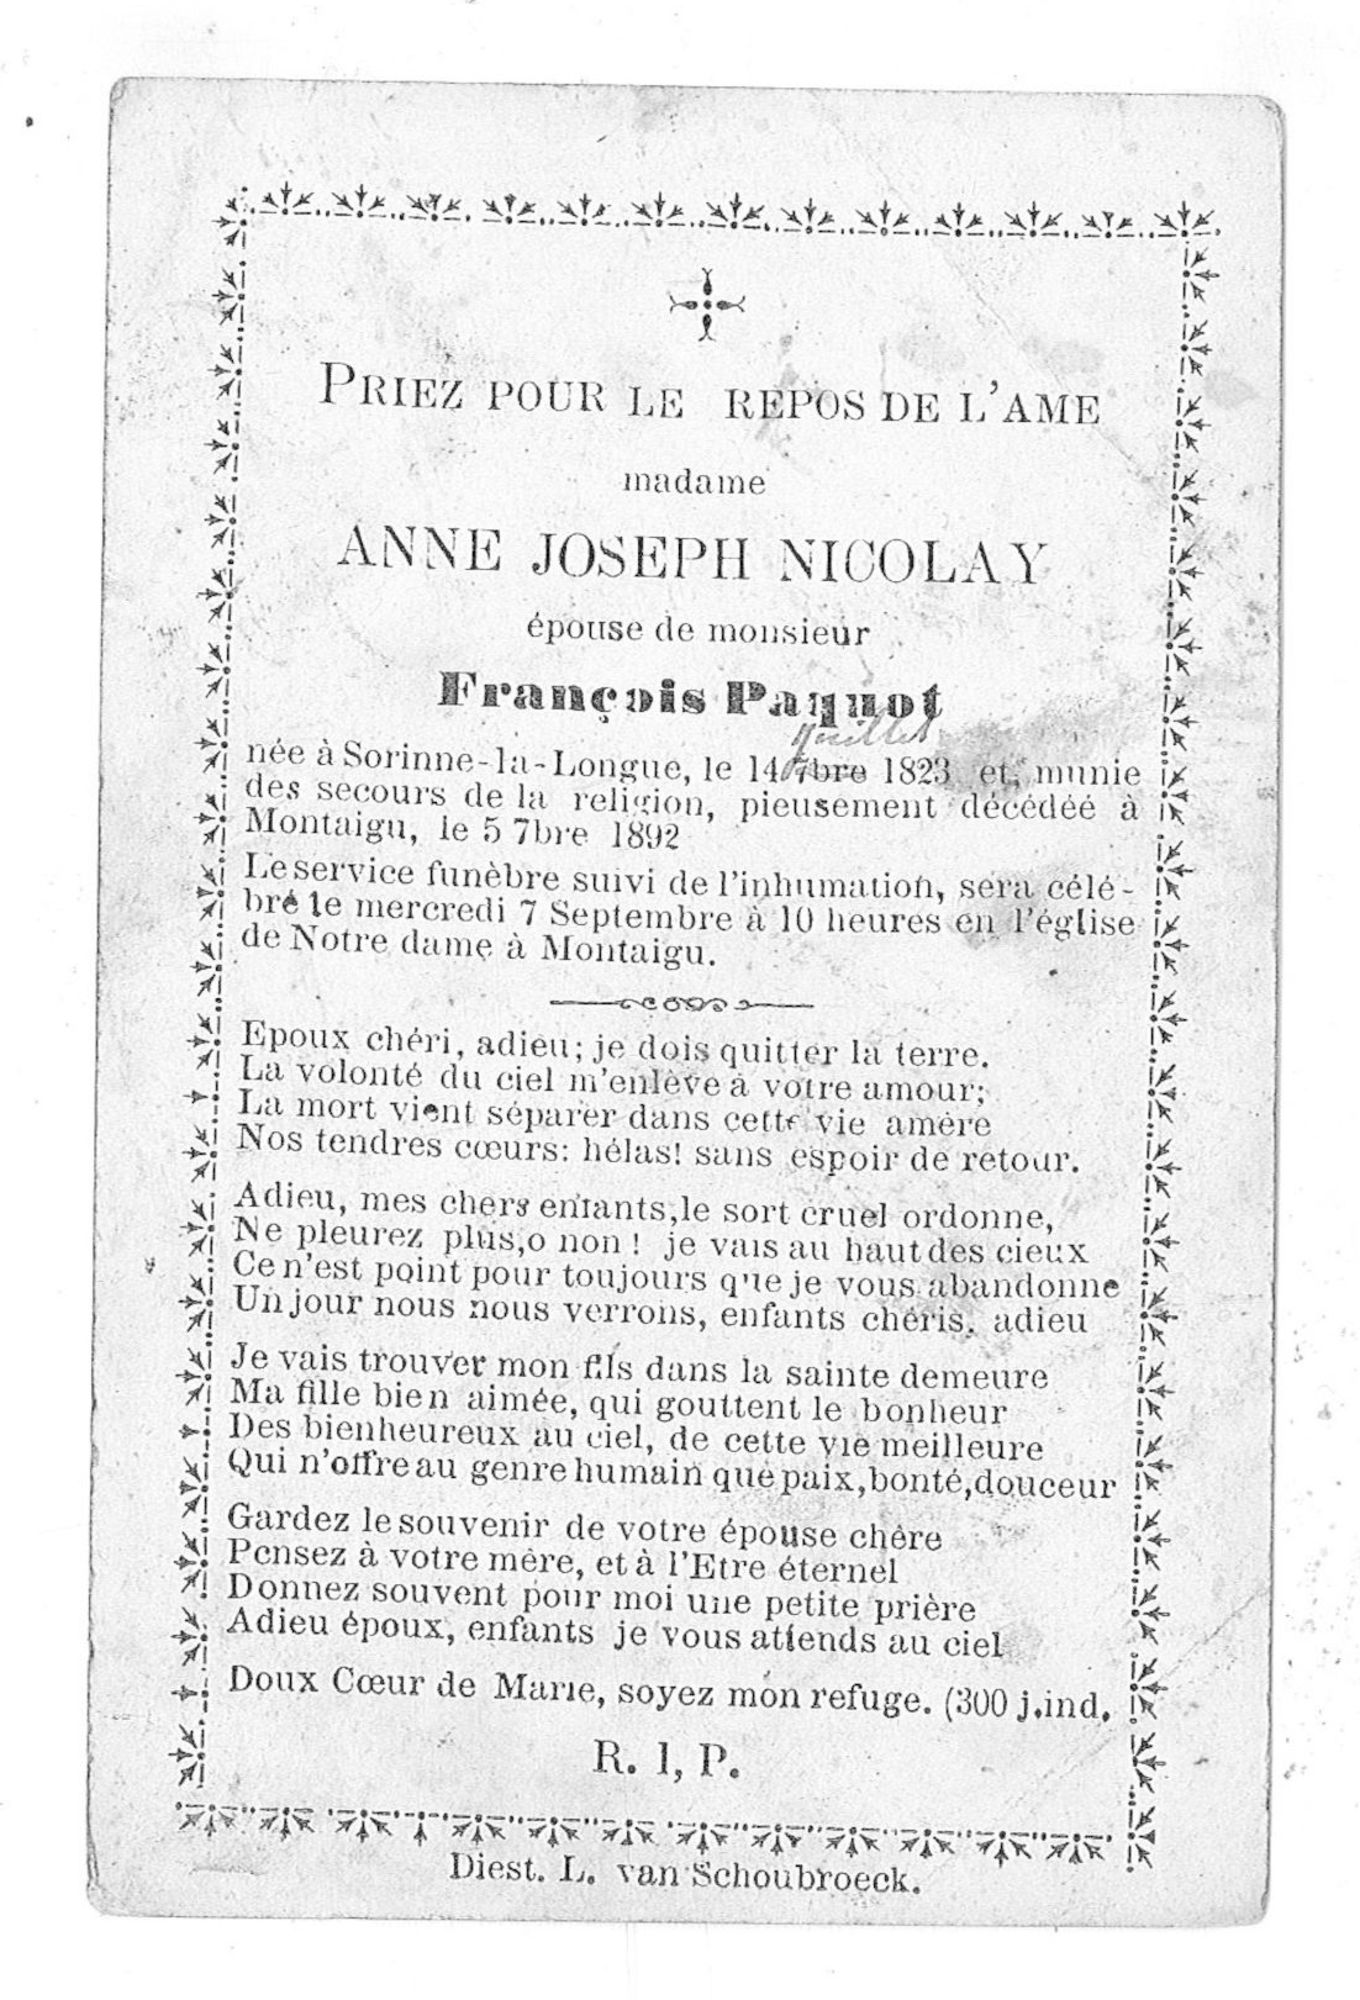 Anne-Joseph Nicolay